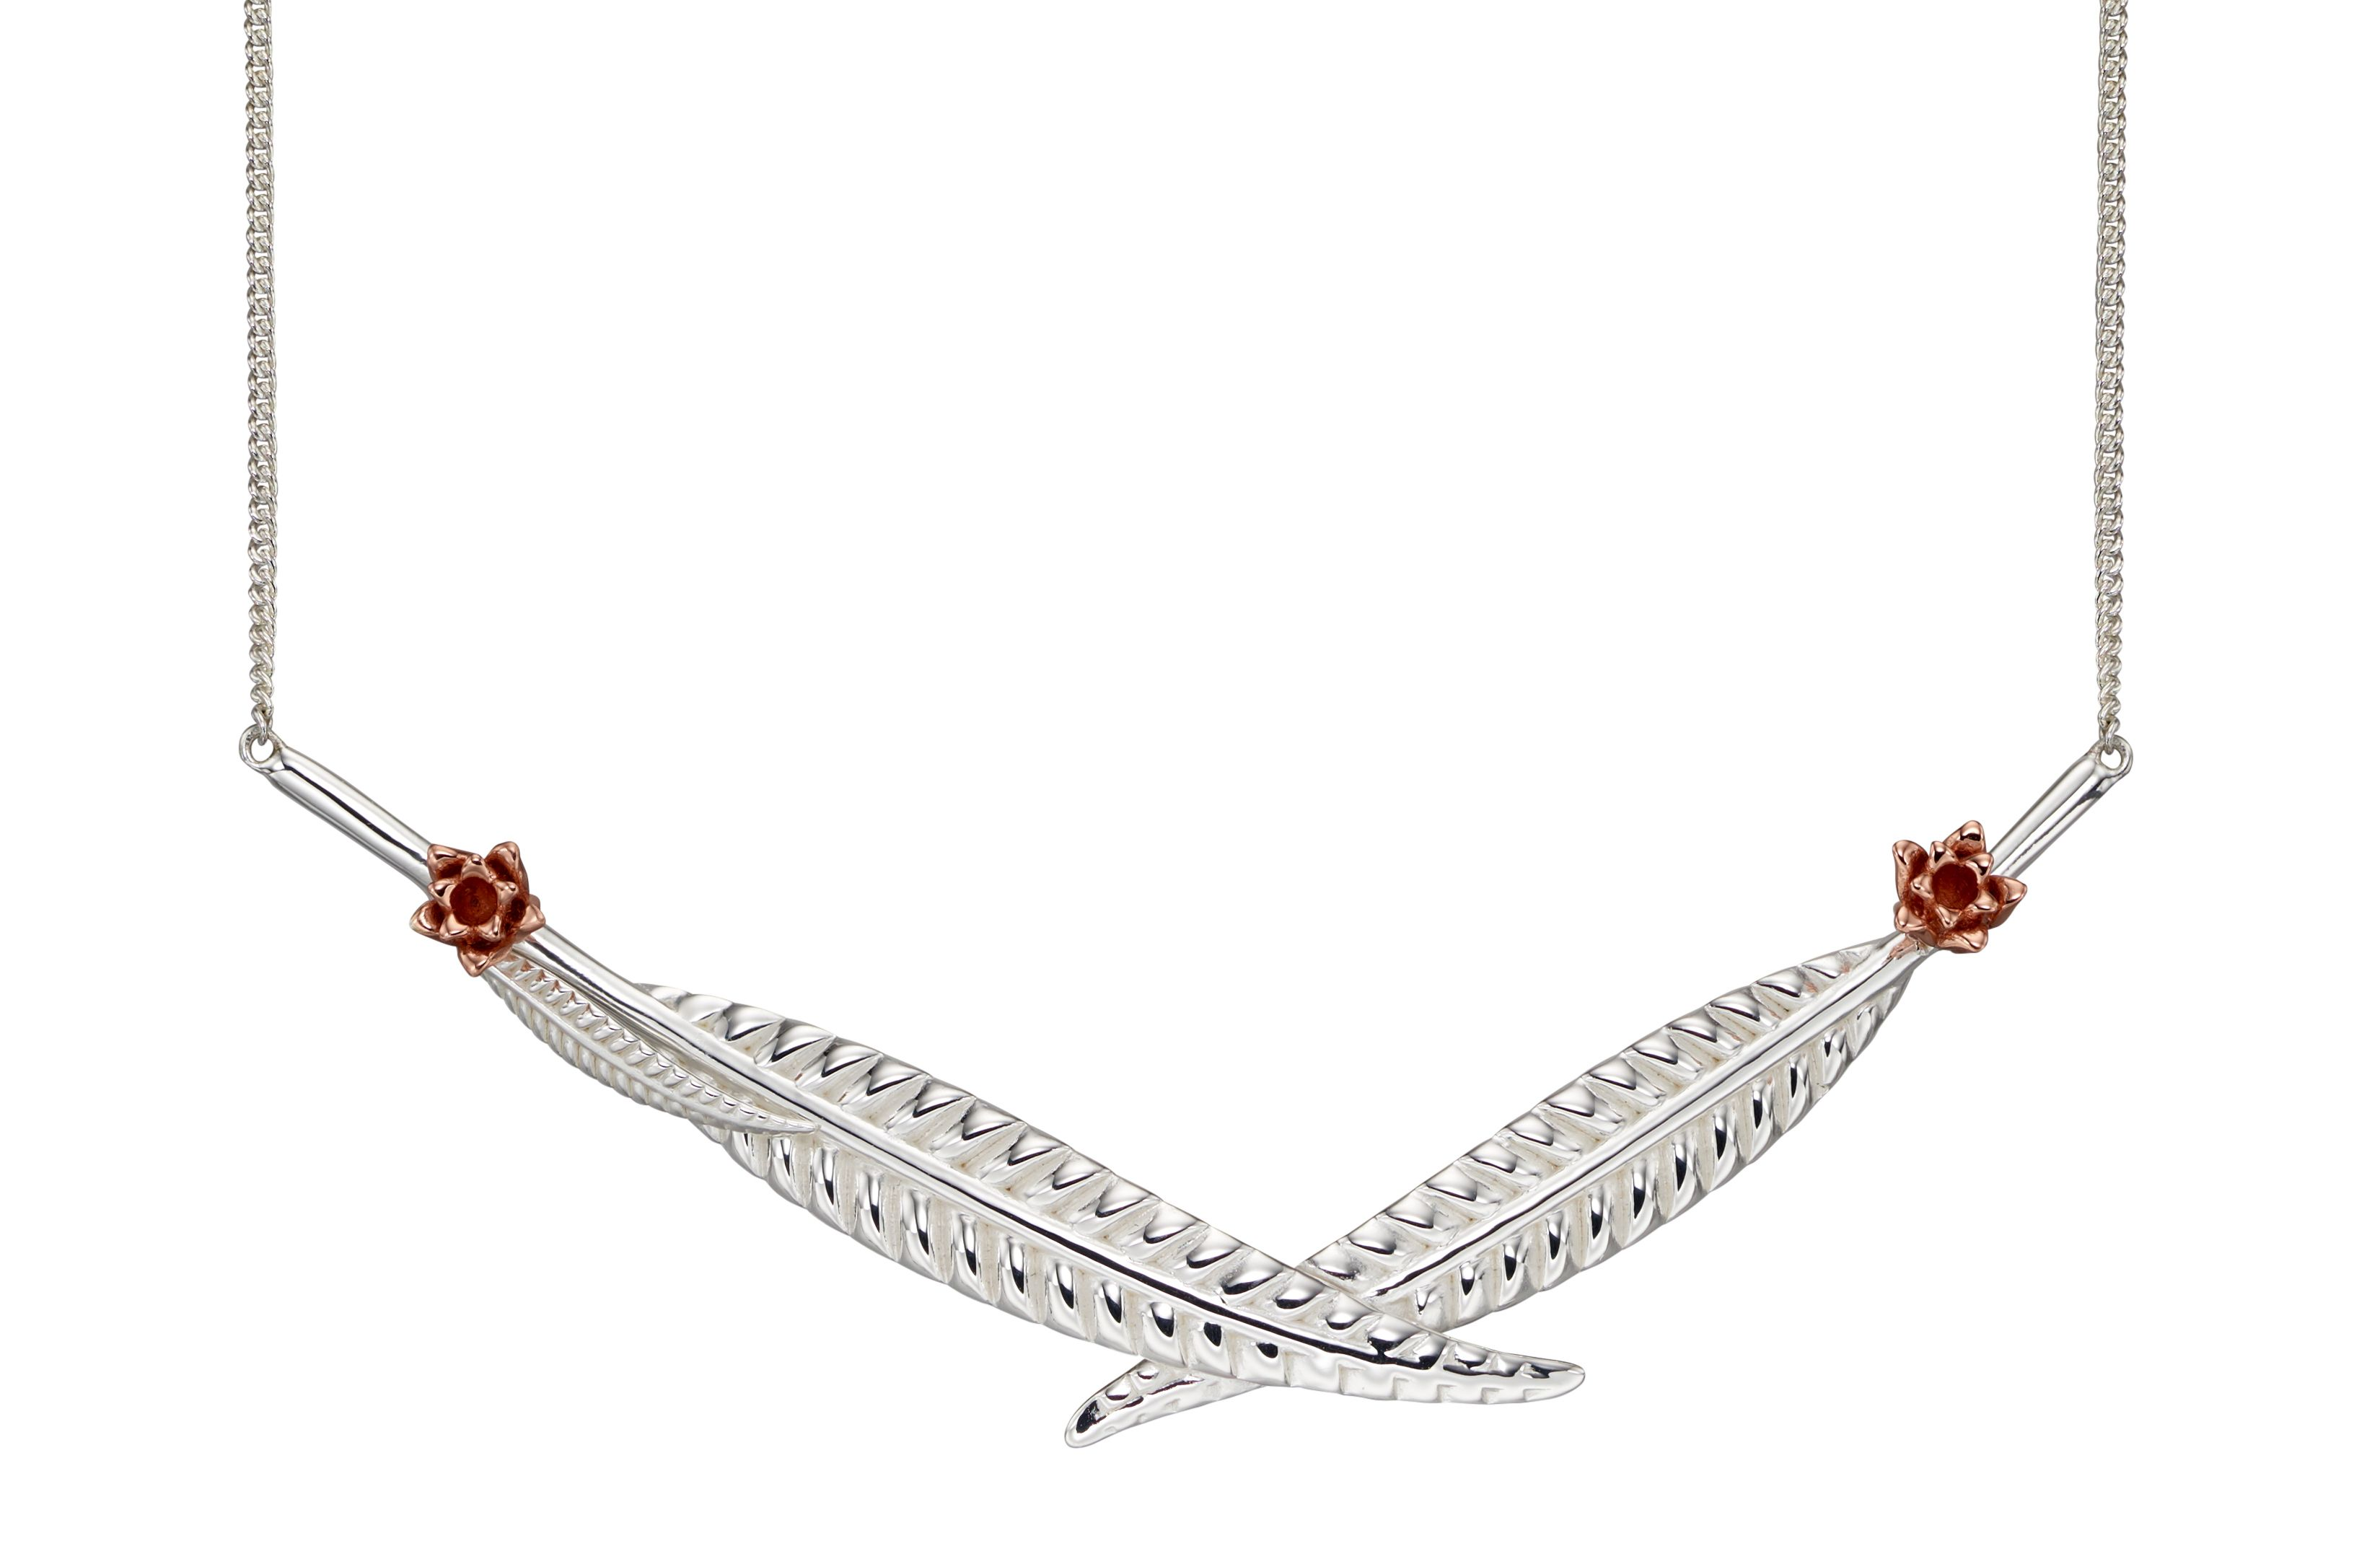 Elements Silver Womens 925 Sterling Silver and Rose Gold Plate Wheat & Flower Statement Necklace of Length 46cm